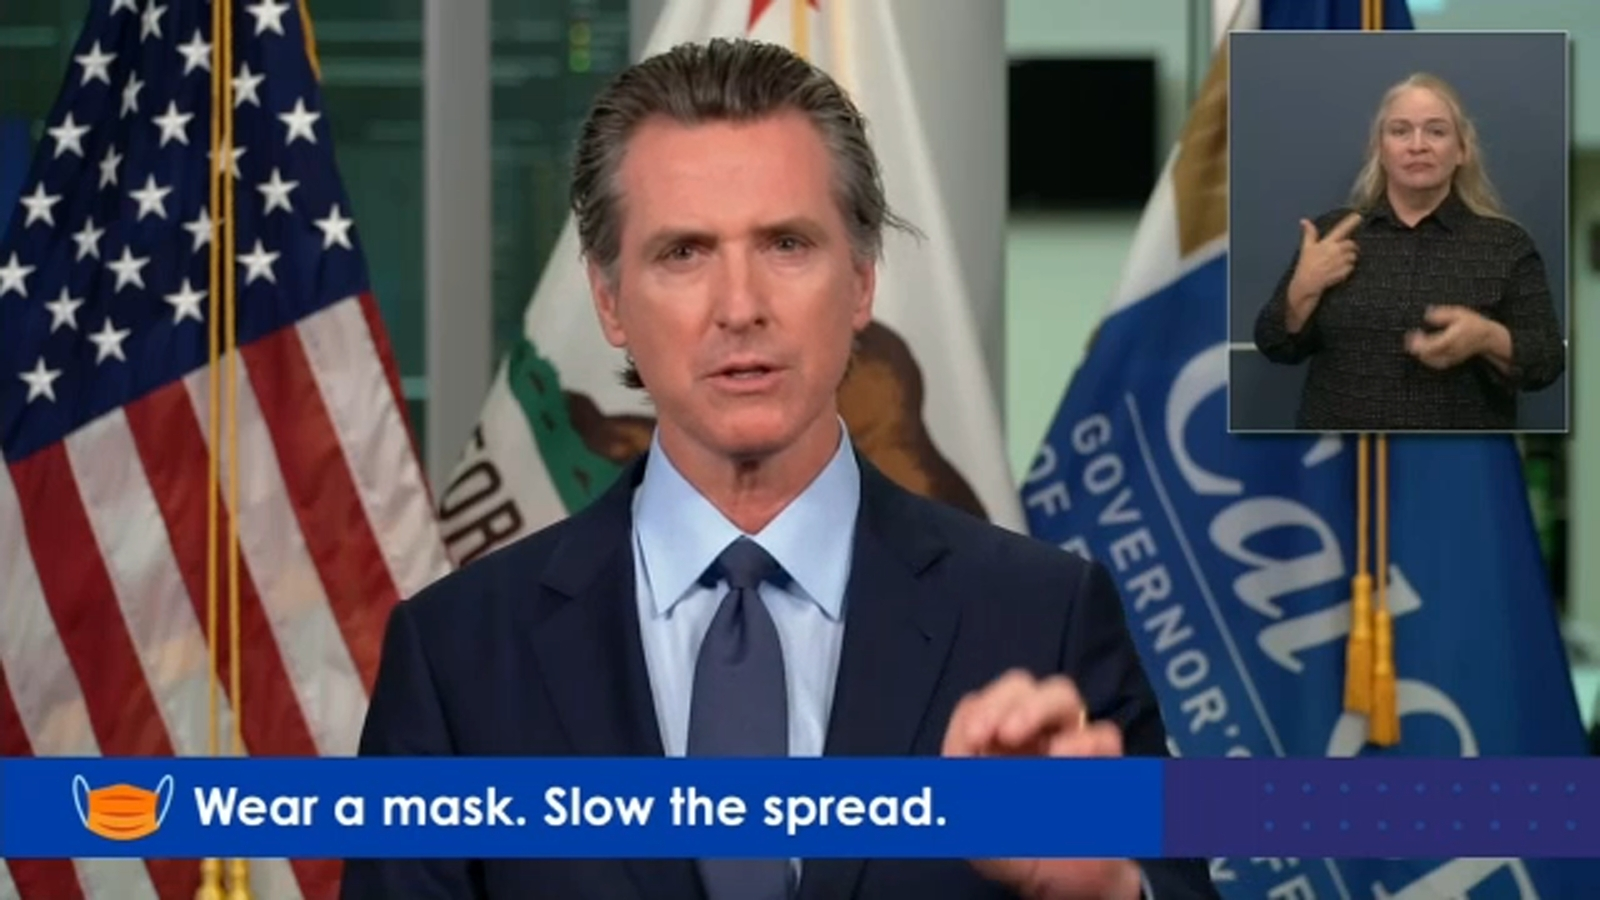 California closures: What Gov. Newsom's announcement means for every Bay Area county